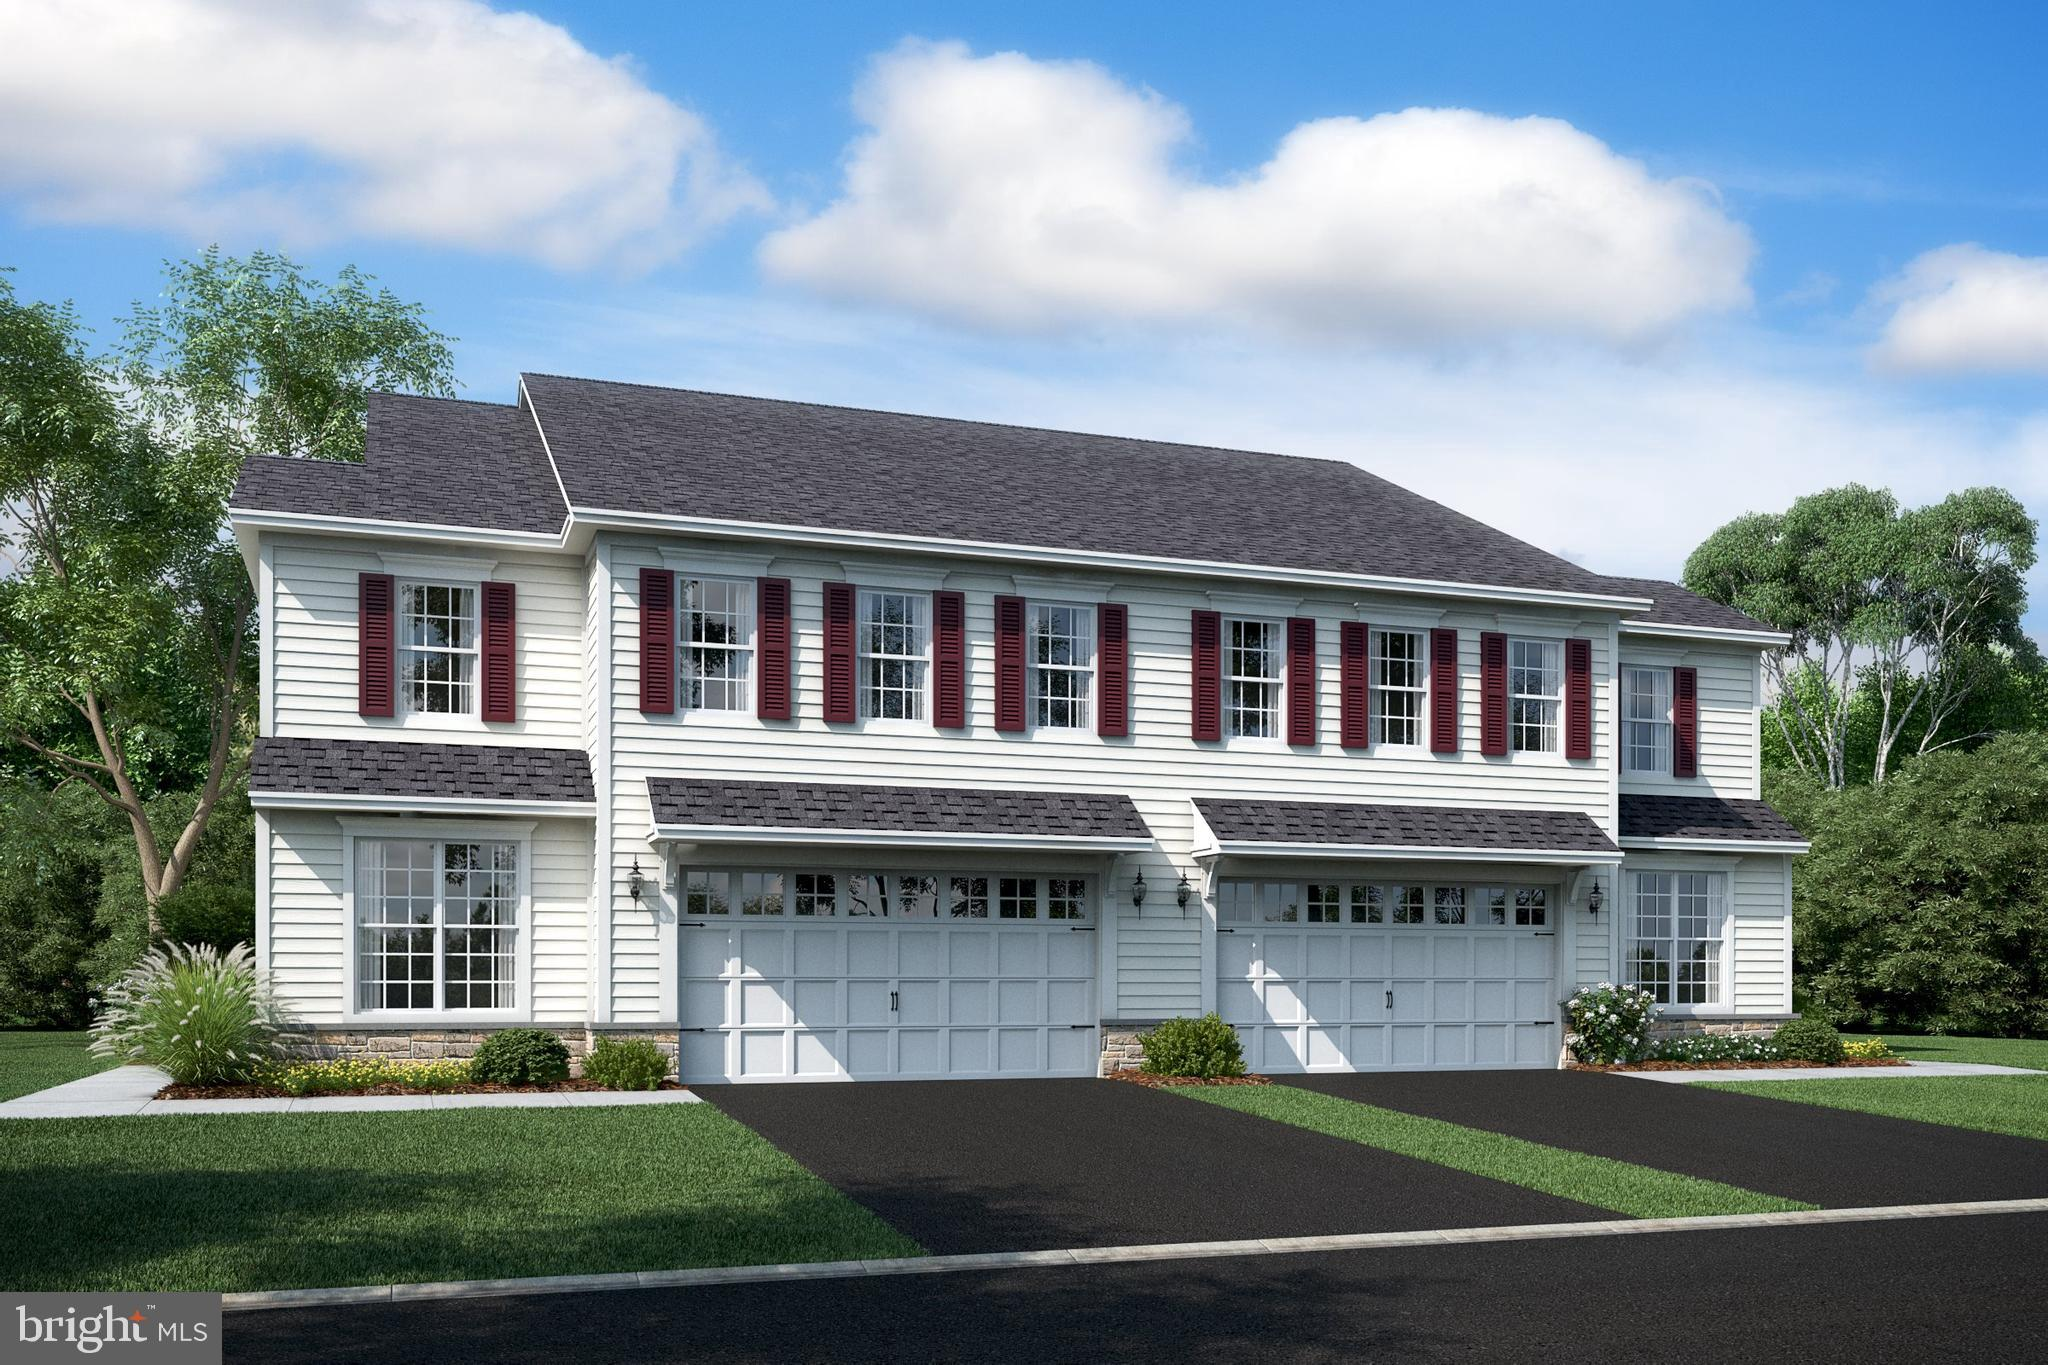 Last available new construction home in the Oliver B. Loss elementary school of the Appo School District. This lovely carriage home will be built this spring. Just in time to enroll in the fall 2020 school year! Come visit the Welcome Home Center at 237 Jenny Drive to review this home and make it yours!